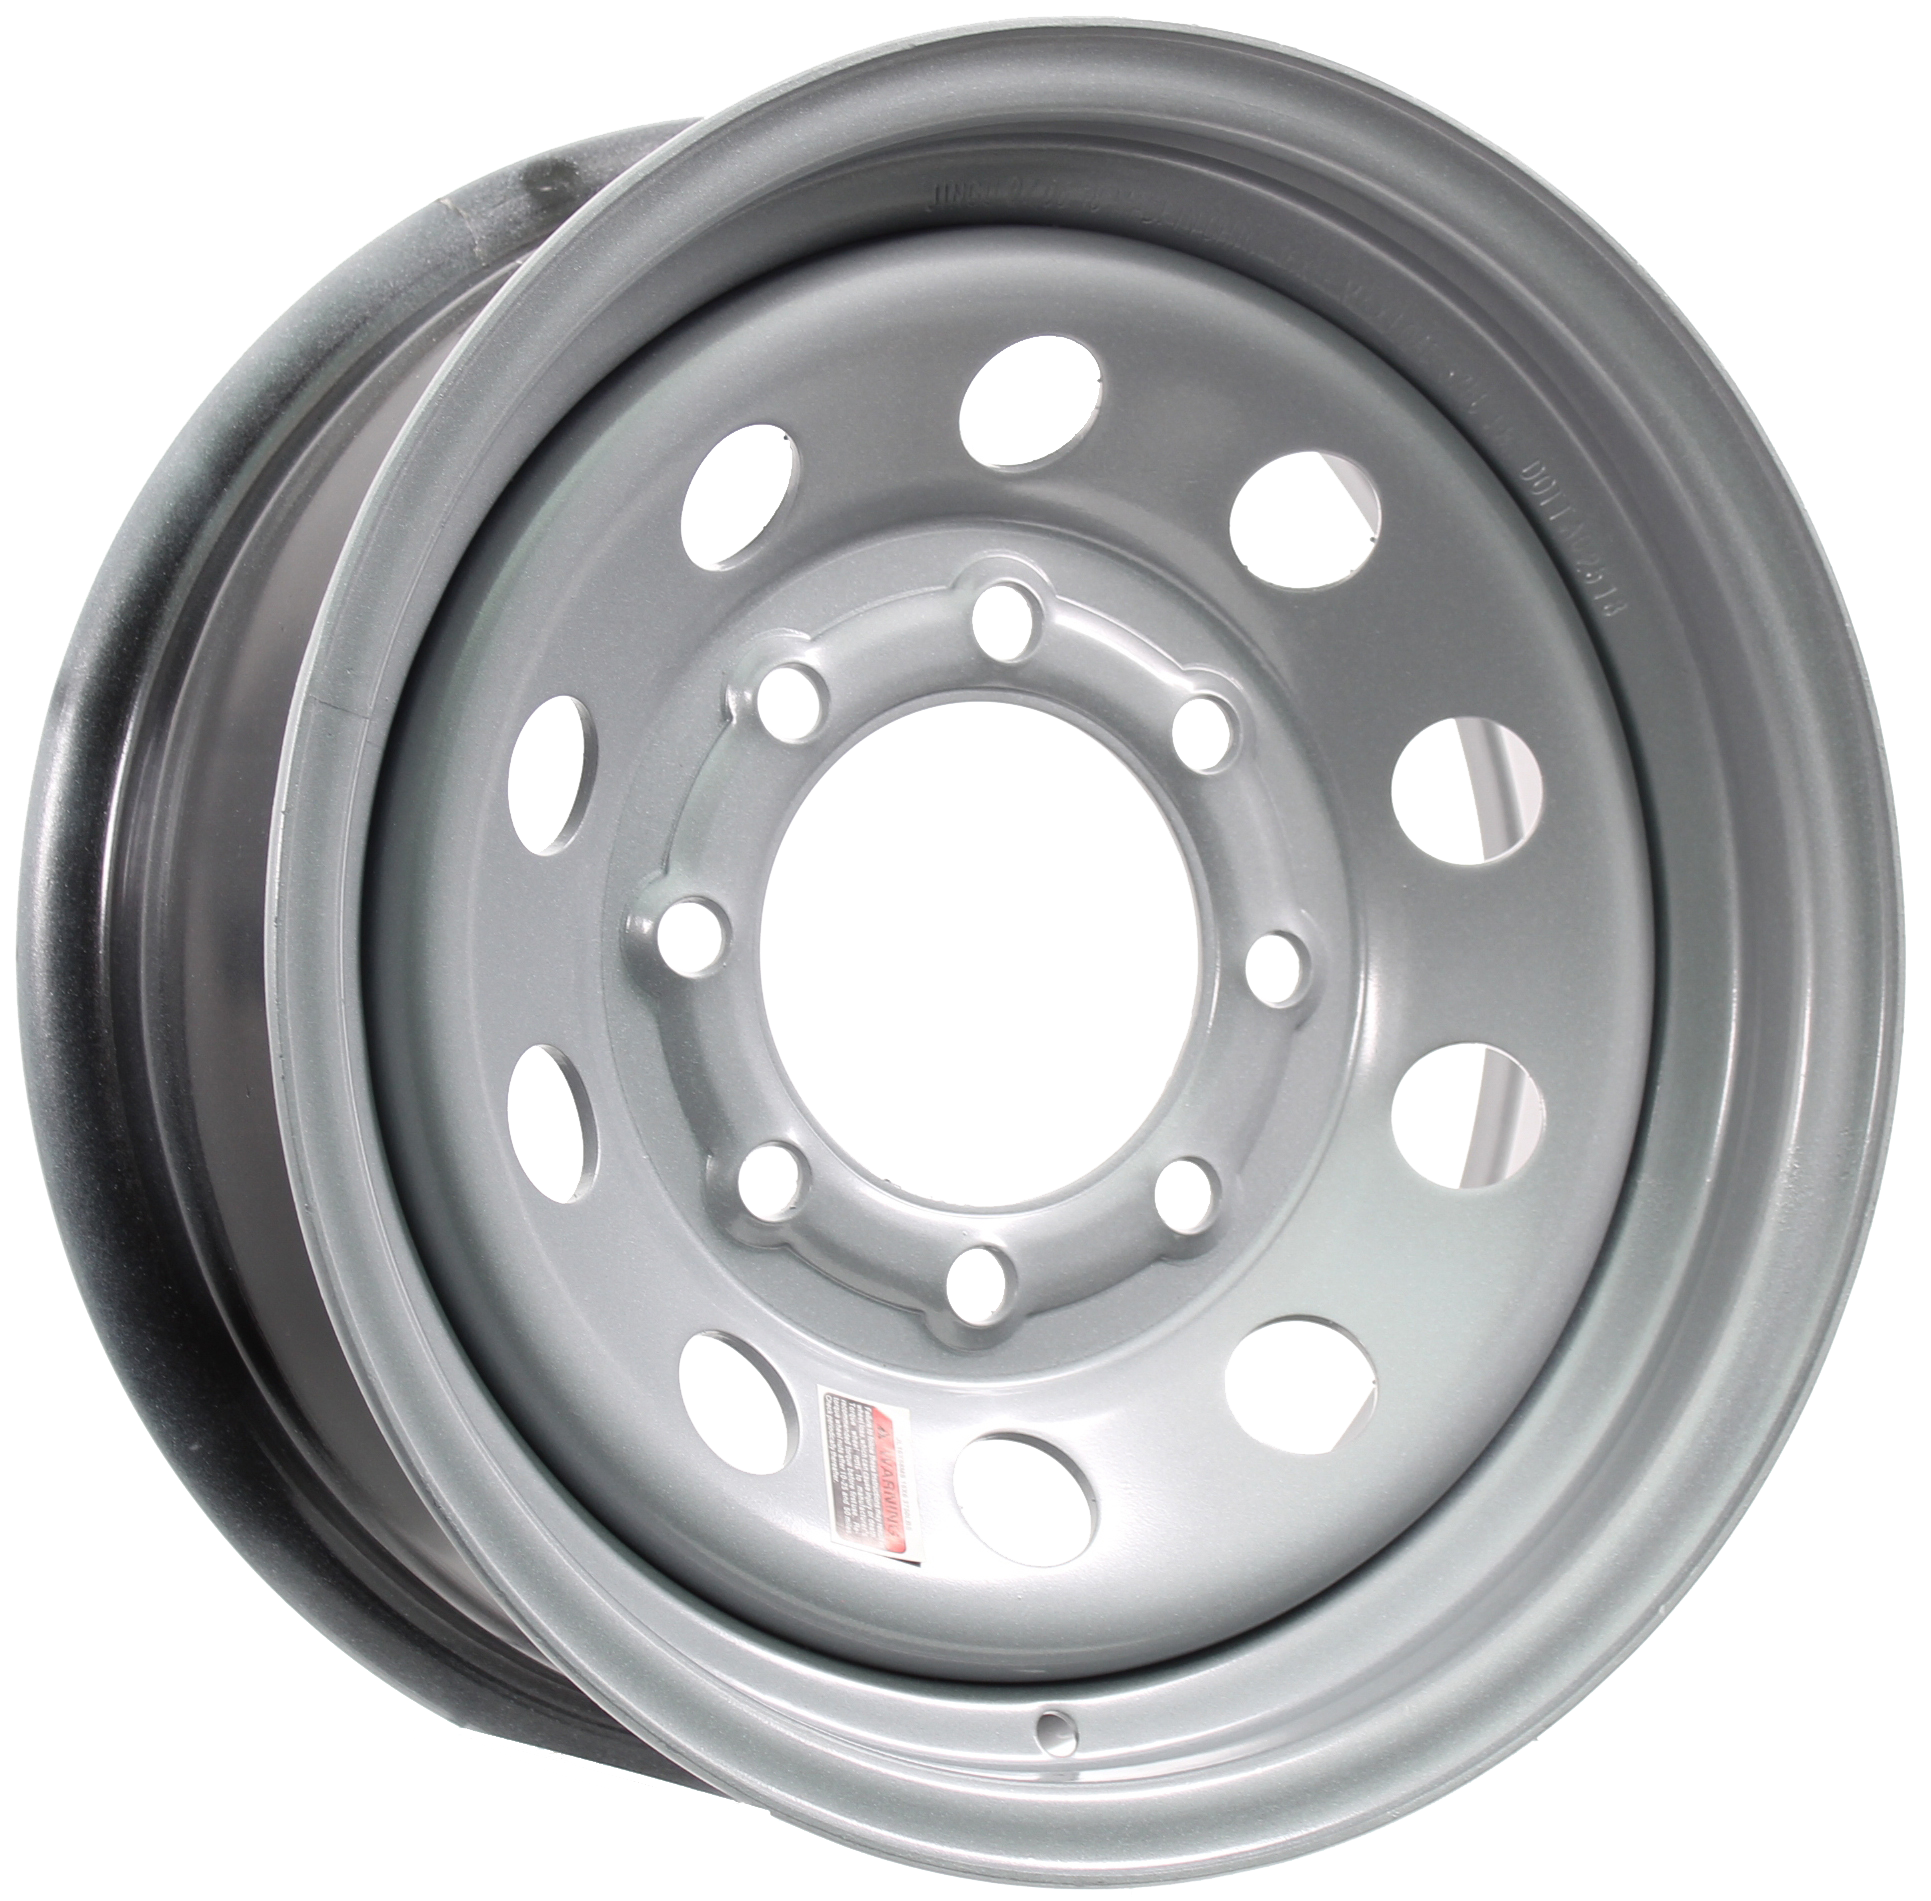 16x6 8-6.5 Silver Mod Steel Trailer Wheel Image